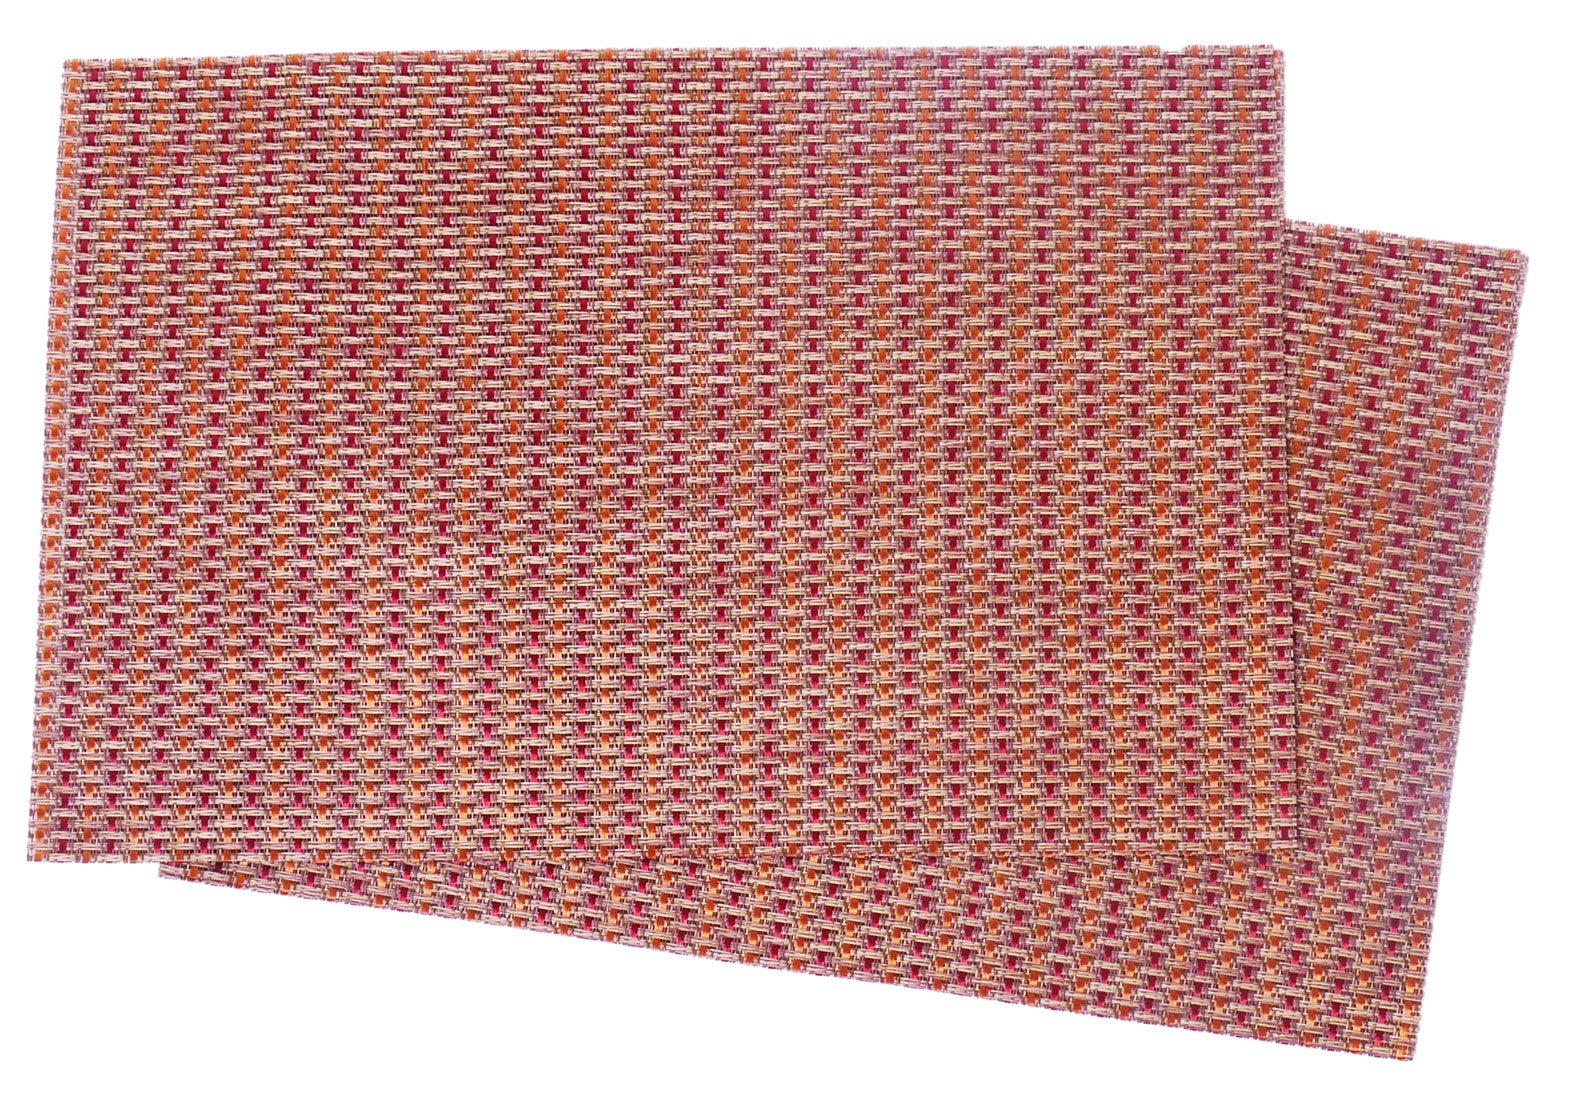 Image of Woven Vinyl Mat Thicket, Set of 4 MAT29